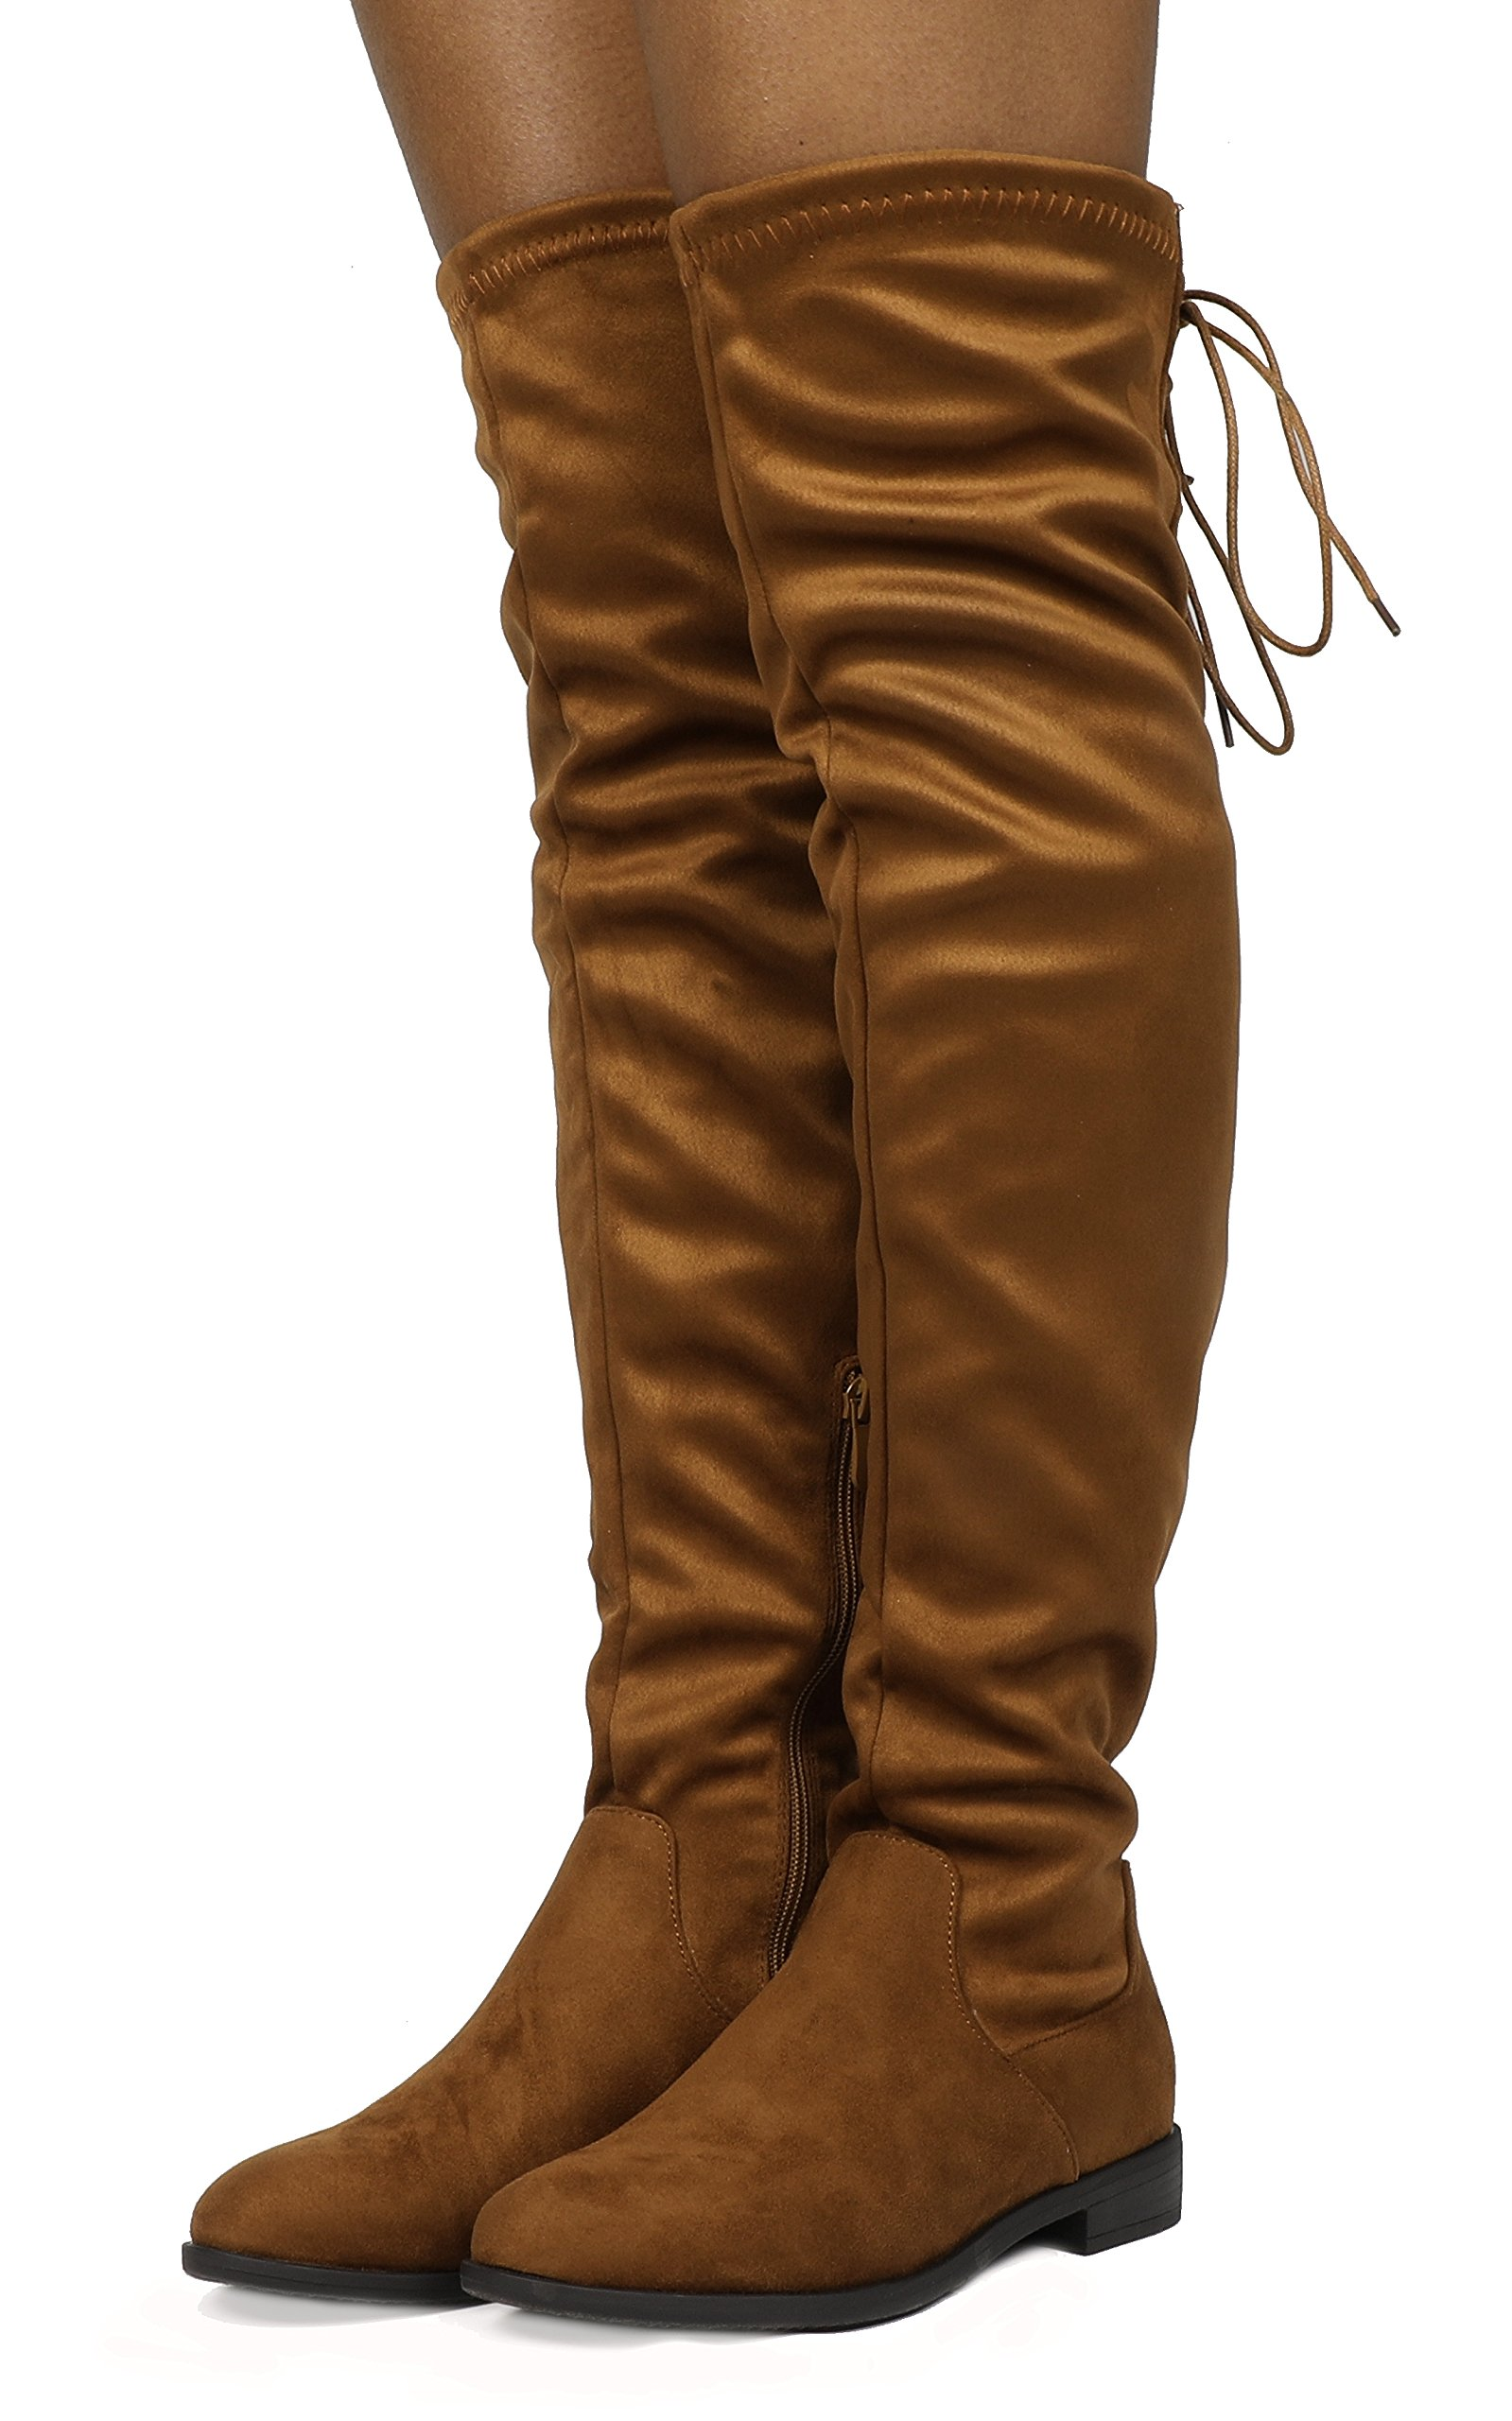 DREAM PAIRS Women's Uplace Tan Suede Over The Knee Thigh High Winter Boots Size 7 M US